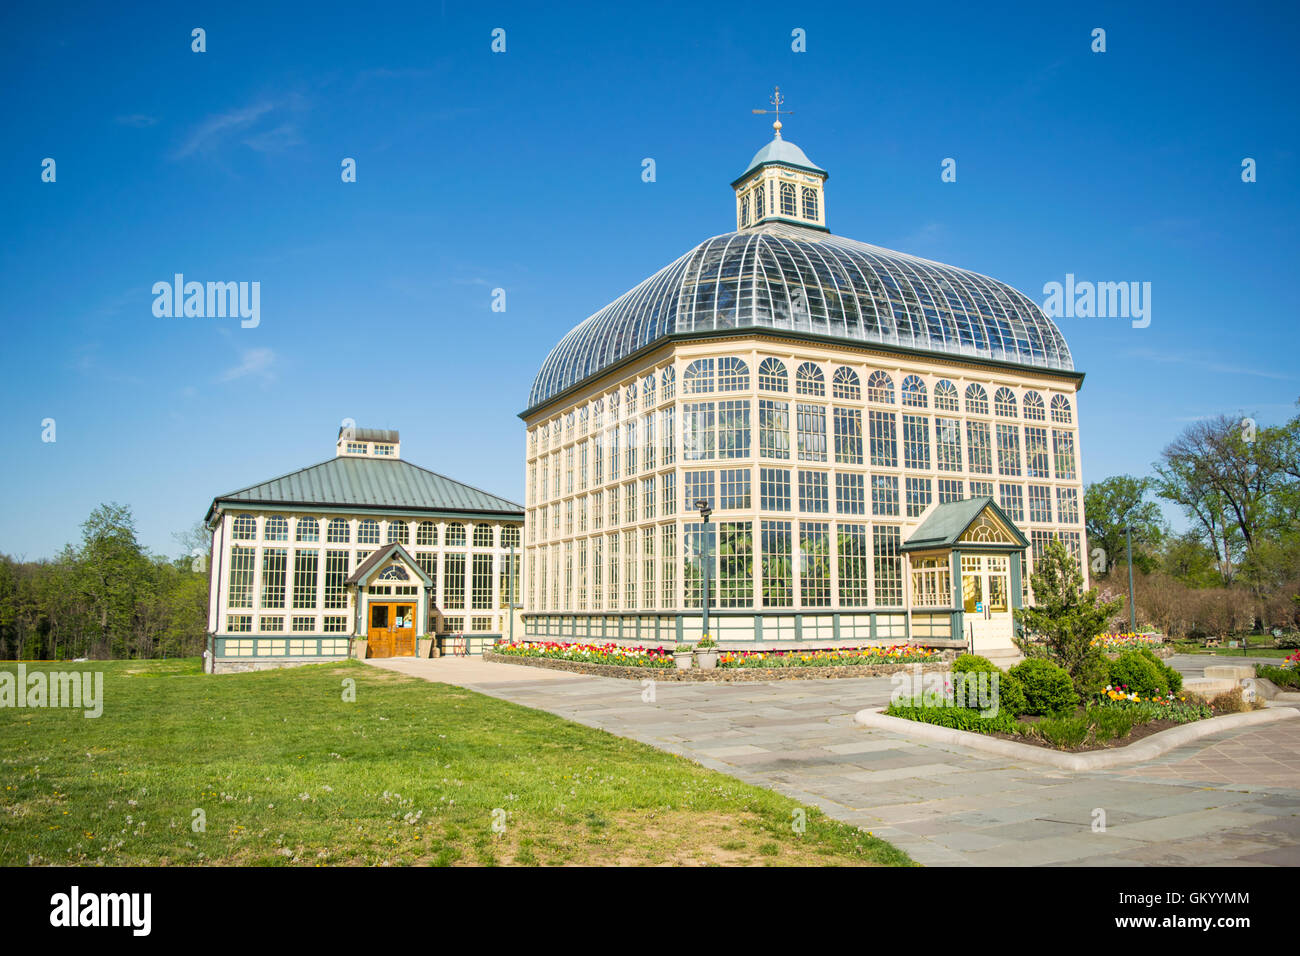 H.P. Rawlings Conservatory and Botanic Gardens in Druid Hill Park in Baltimore, Maryland - Stock Image